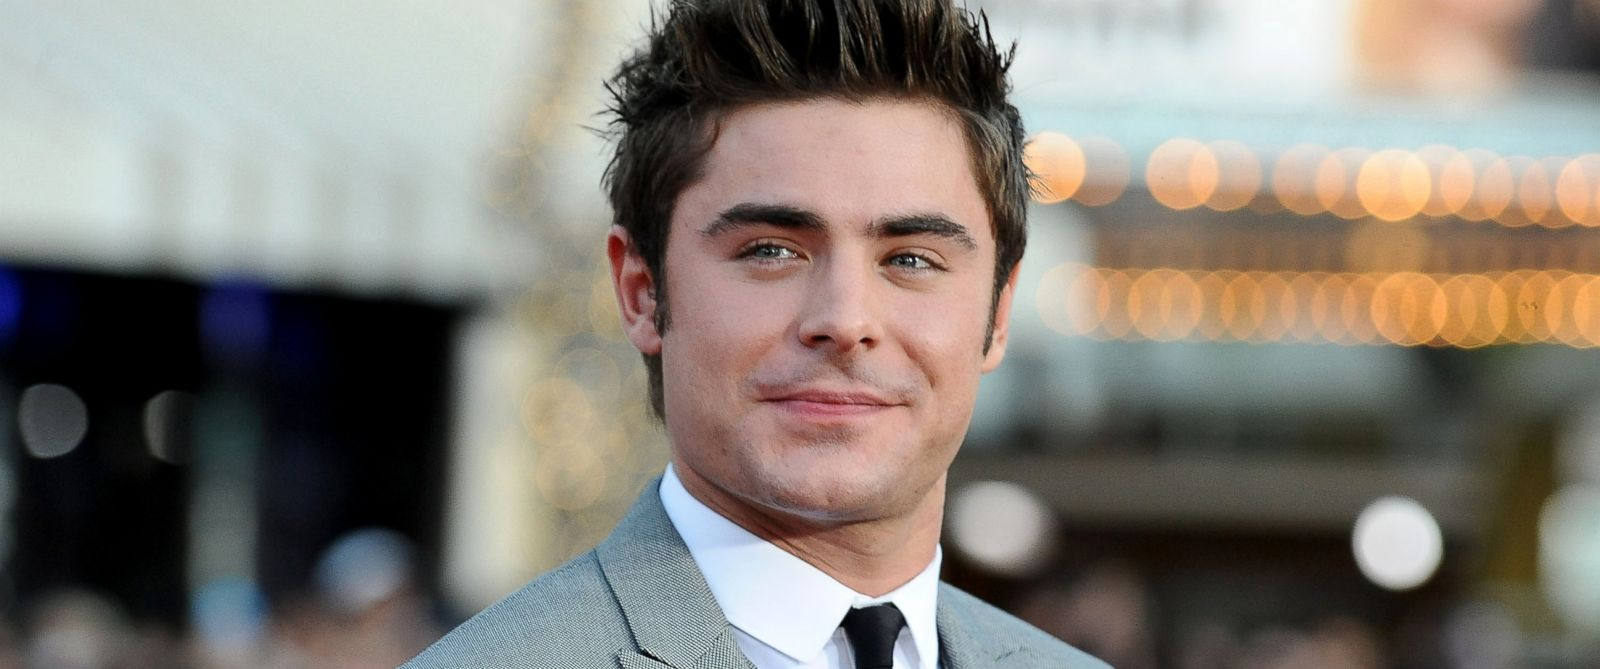 "PHOTO: Zac Efron attends the premiere of ""Neighbors"" at Regency Village Theatre, April 28, 2014, in Westwood, Calif."